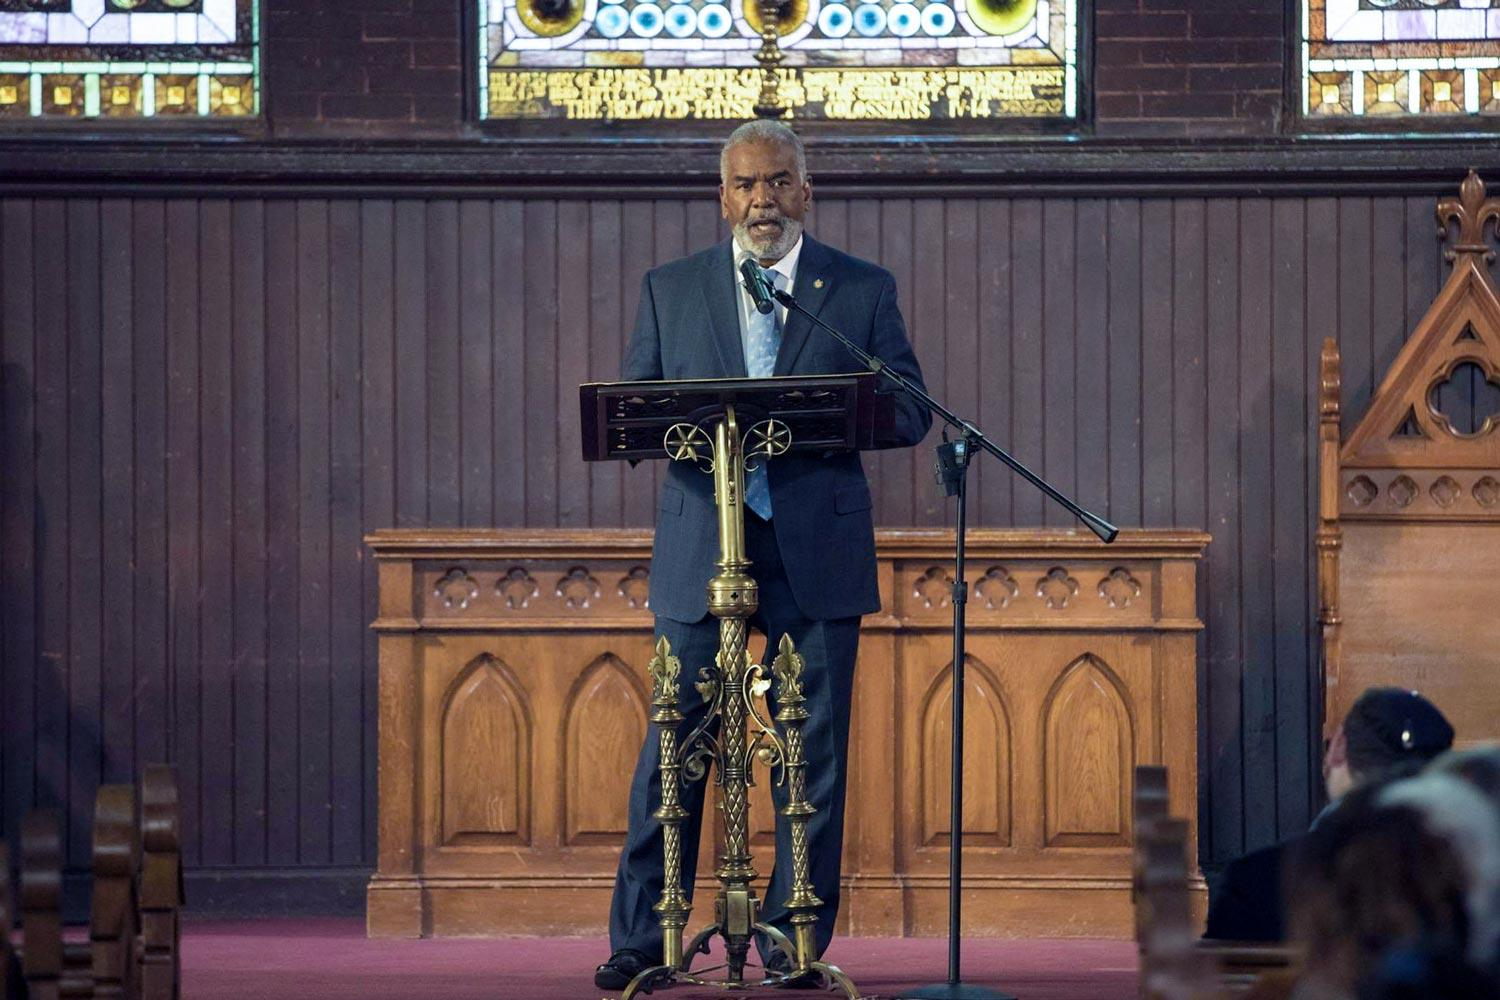 Dr. Marcus Martin, UVA's vice president for diversity and equity, addresses the audience during last year's inaugural observance of Liberation and Freedom Day.